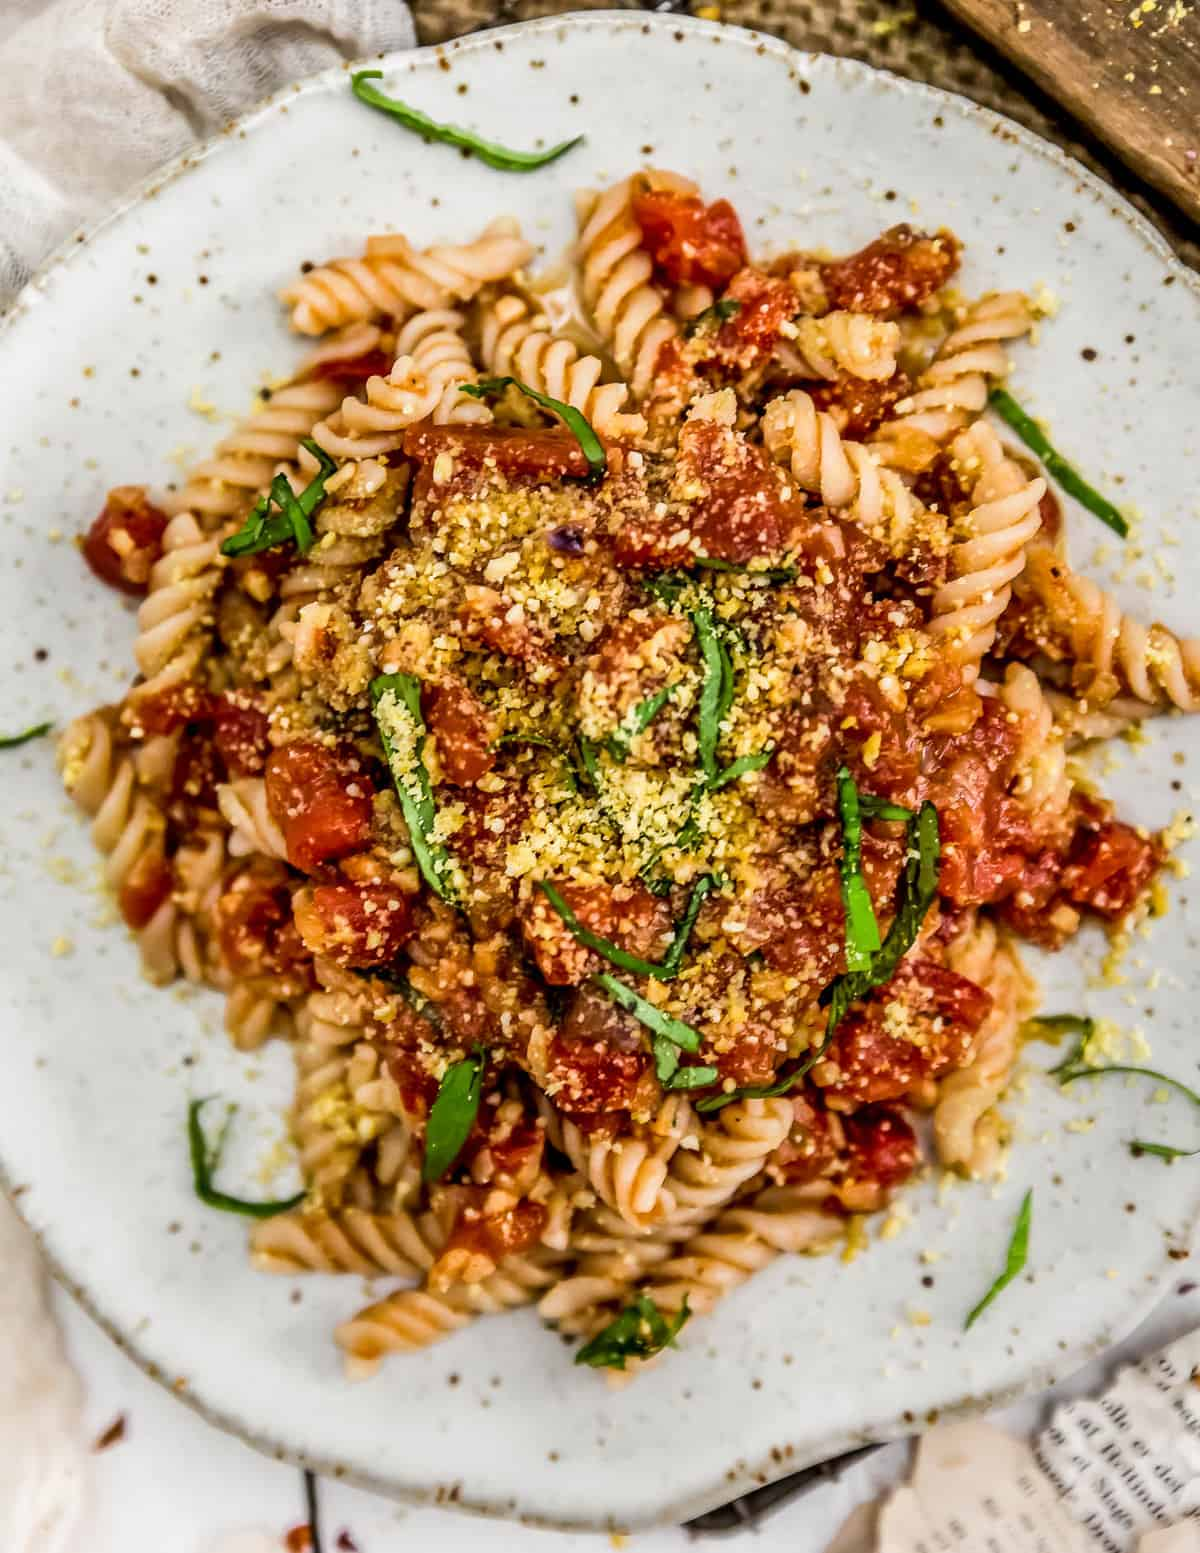 Spicy Arrabbiata Sauce with pasta